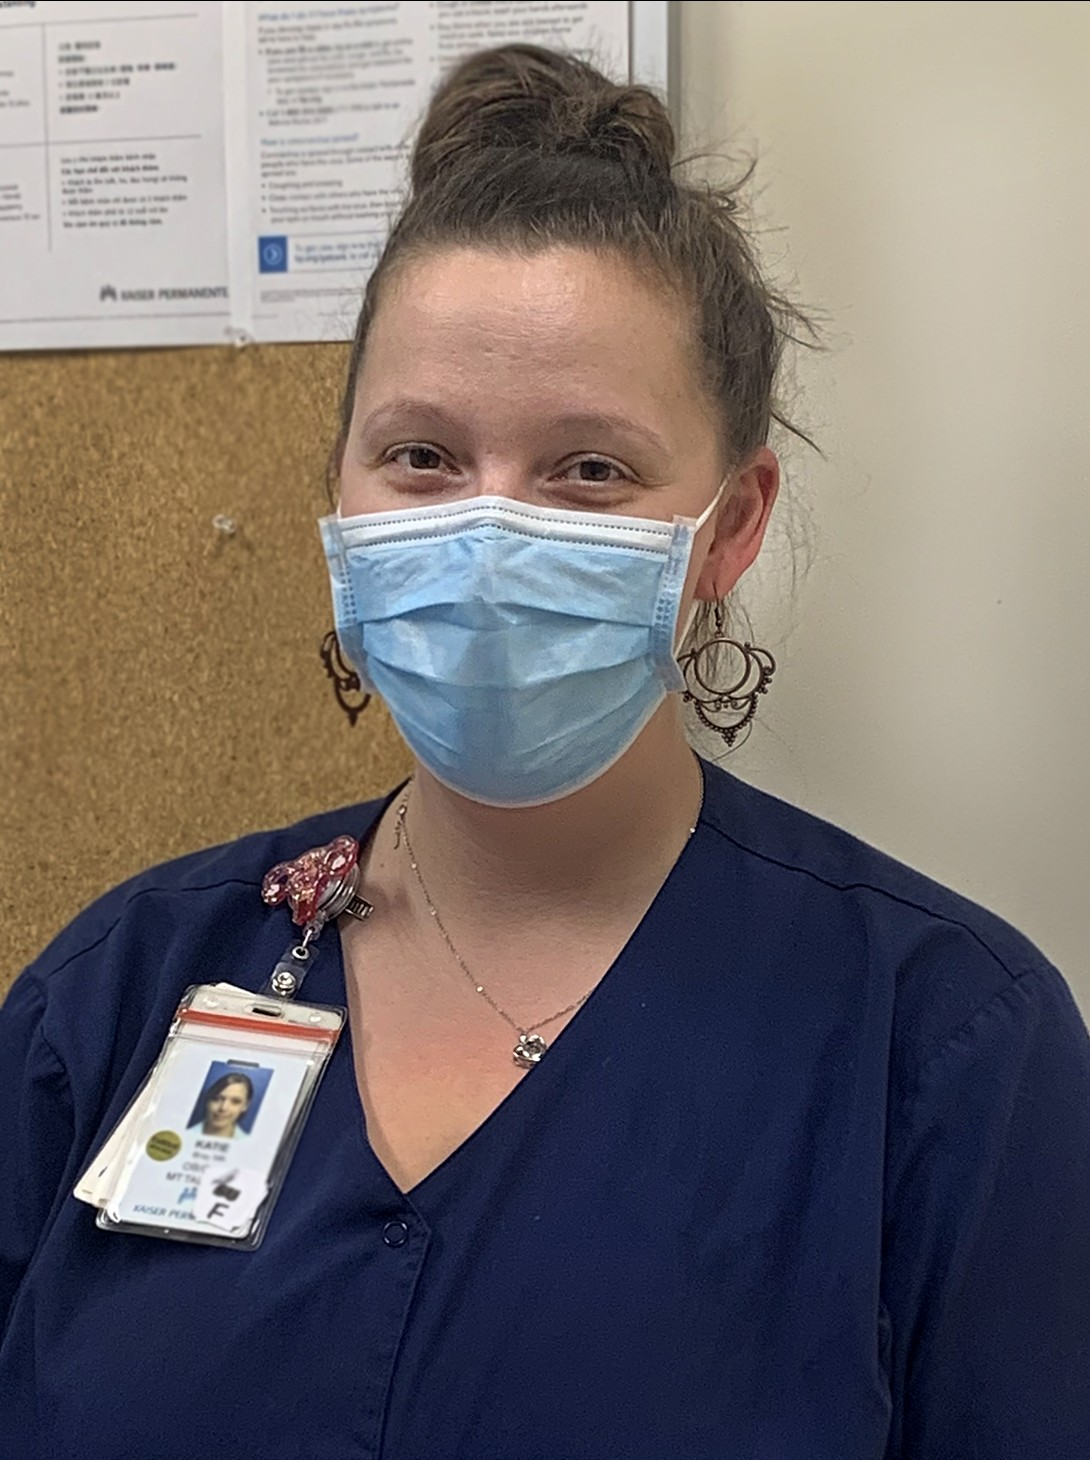 A female health care worker, wearing dark blue scrubs and a light blue mask